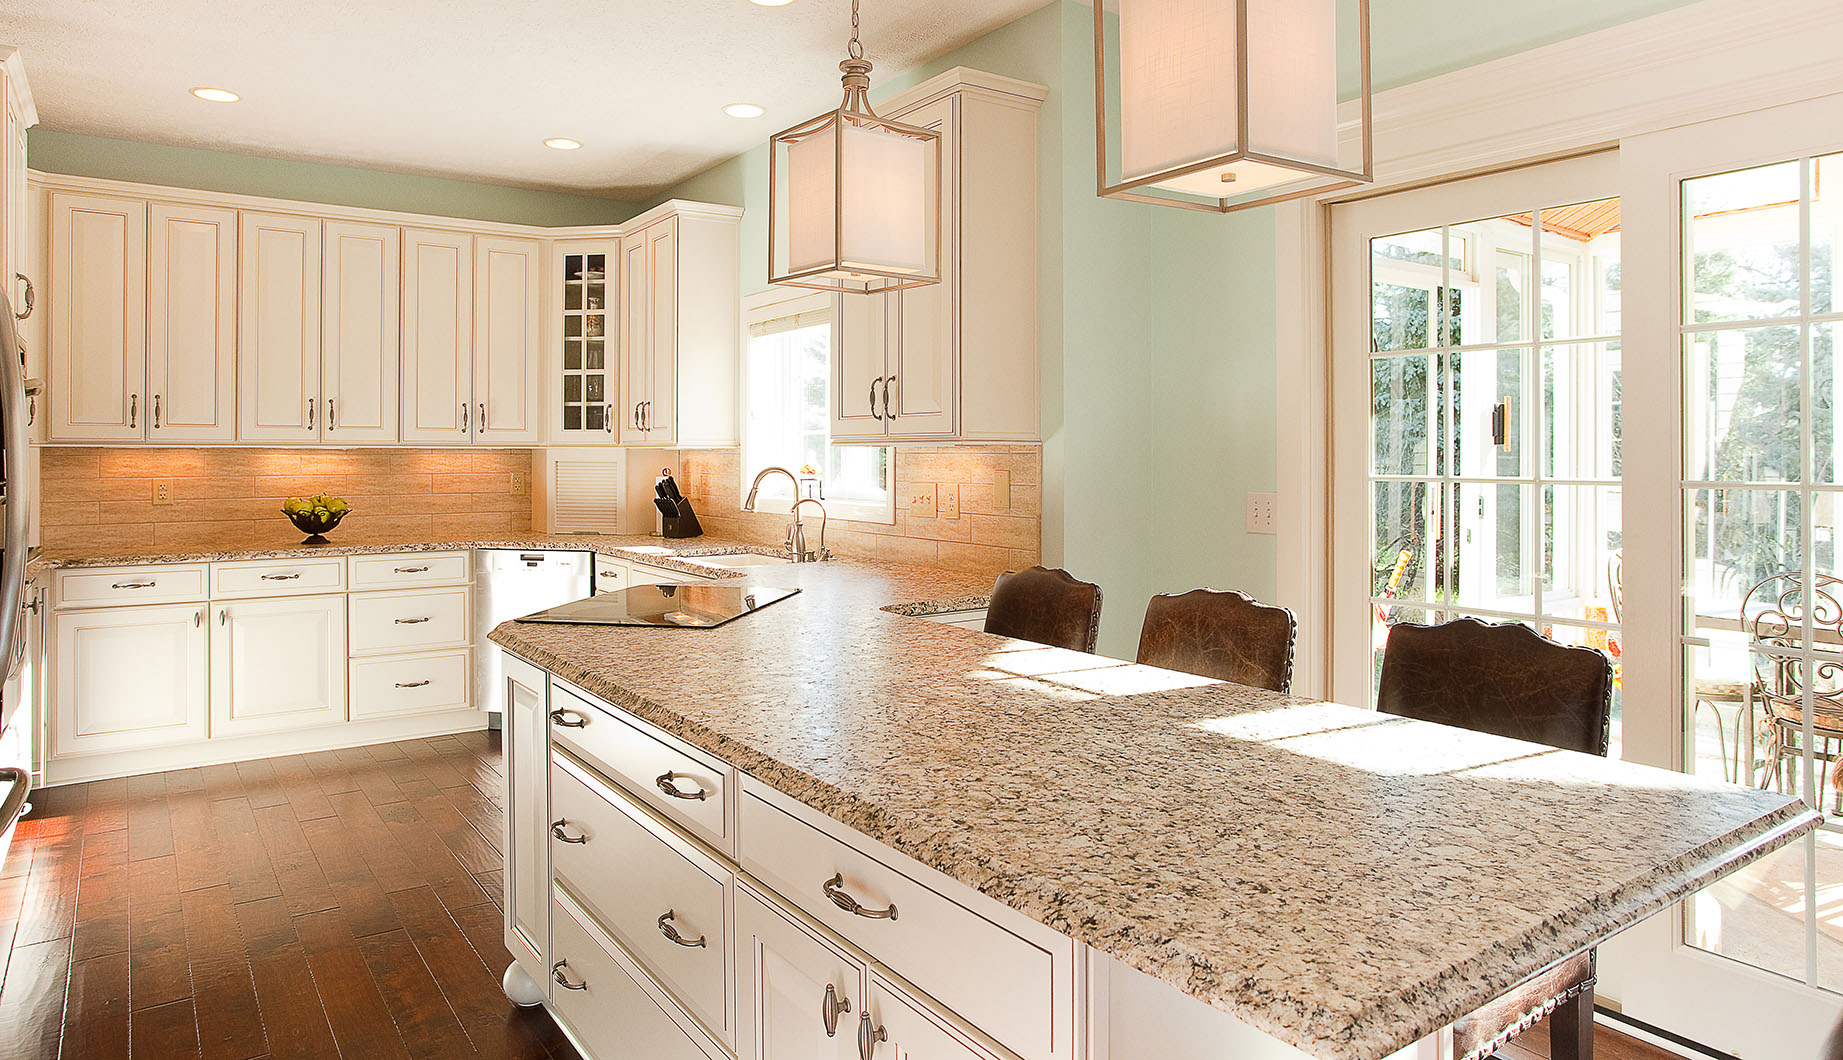 Creating new cabinet space in kitchen remodel | Current Publishing